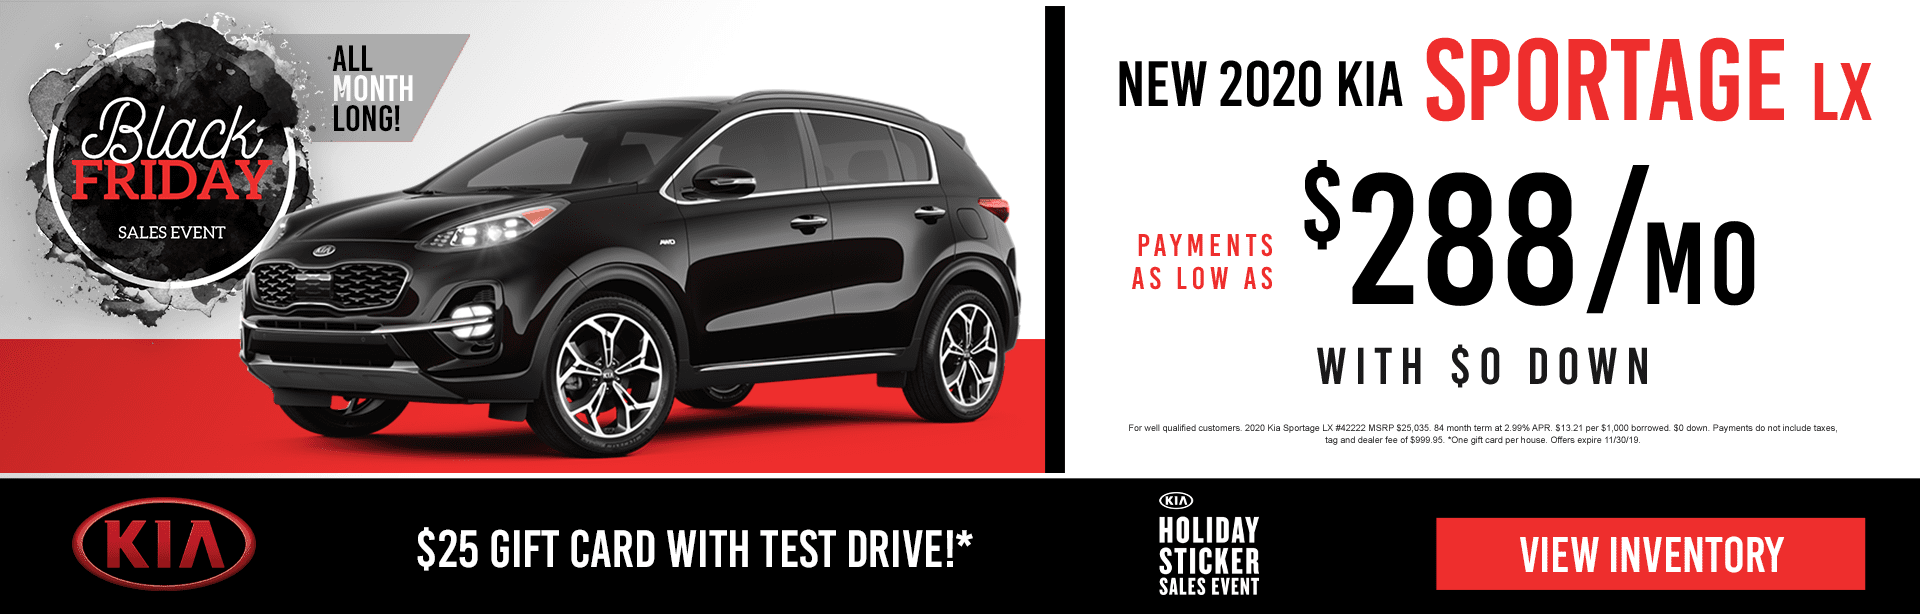 Black Friday Sales Event. All Month Long. New 2020 Kia Sportage LX. Payments as low at $288 a month with $0 down.